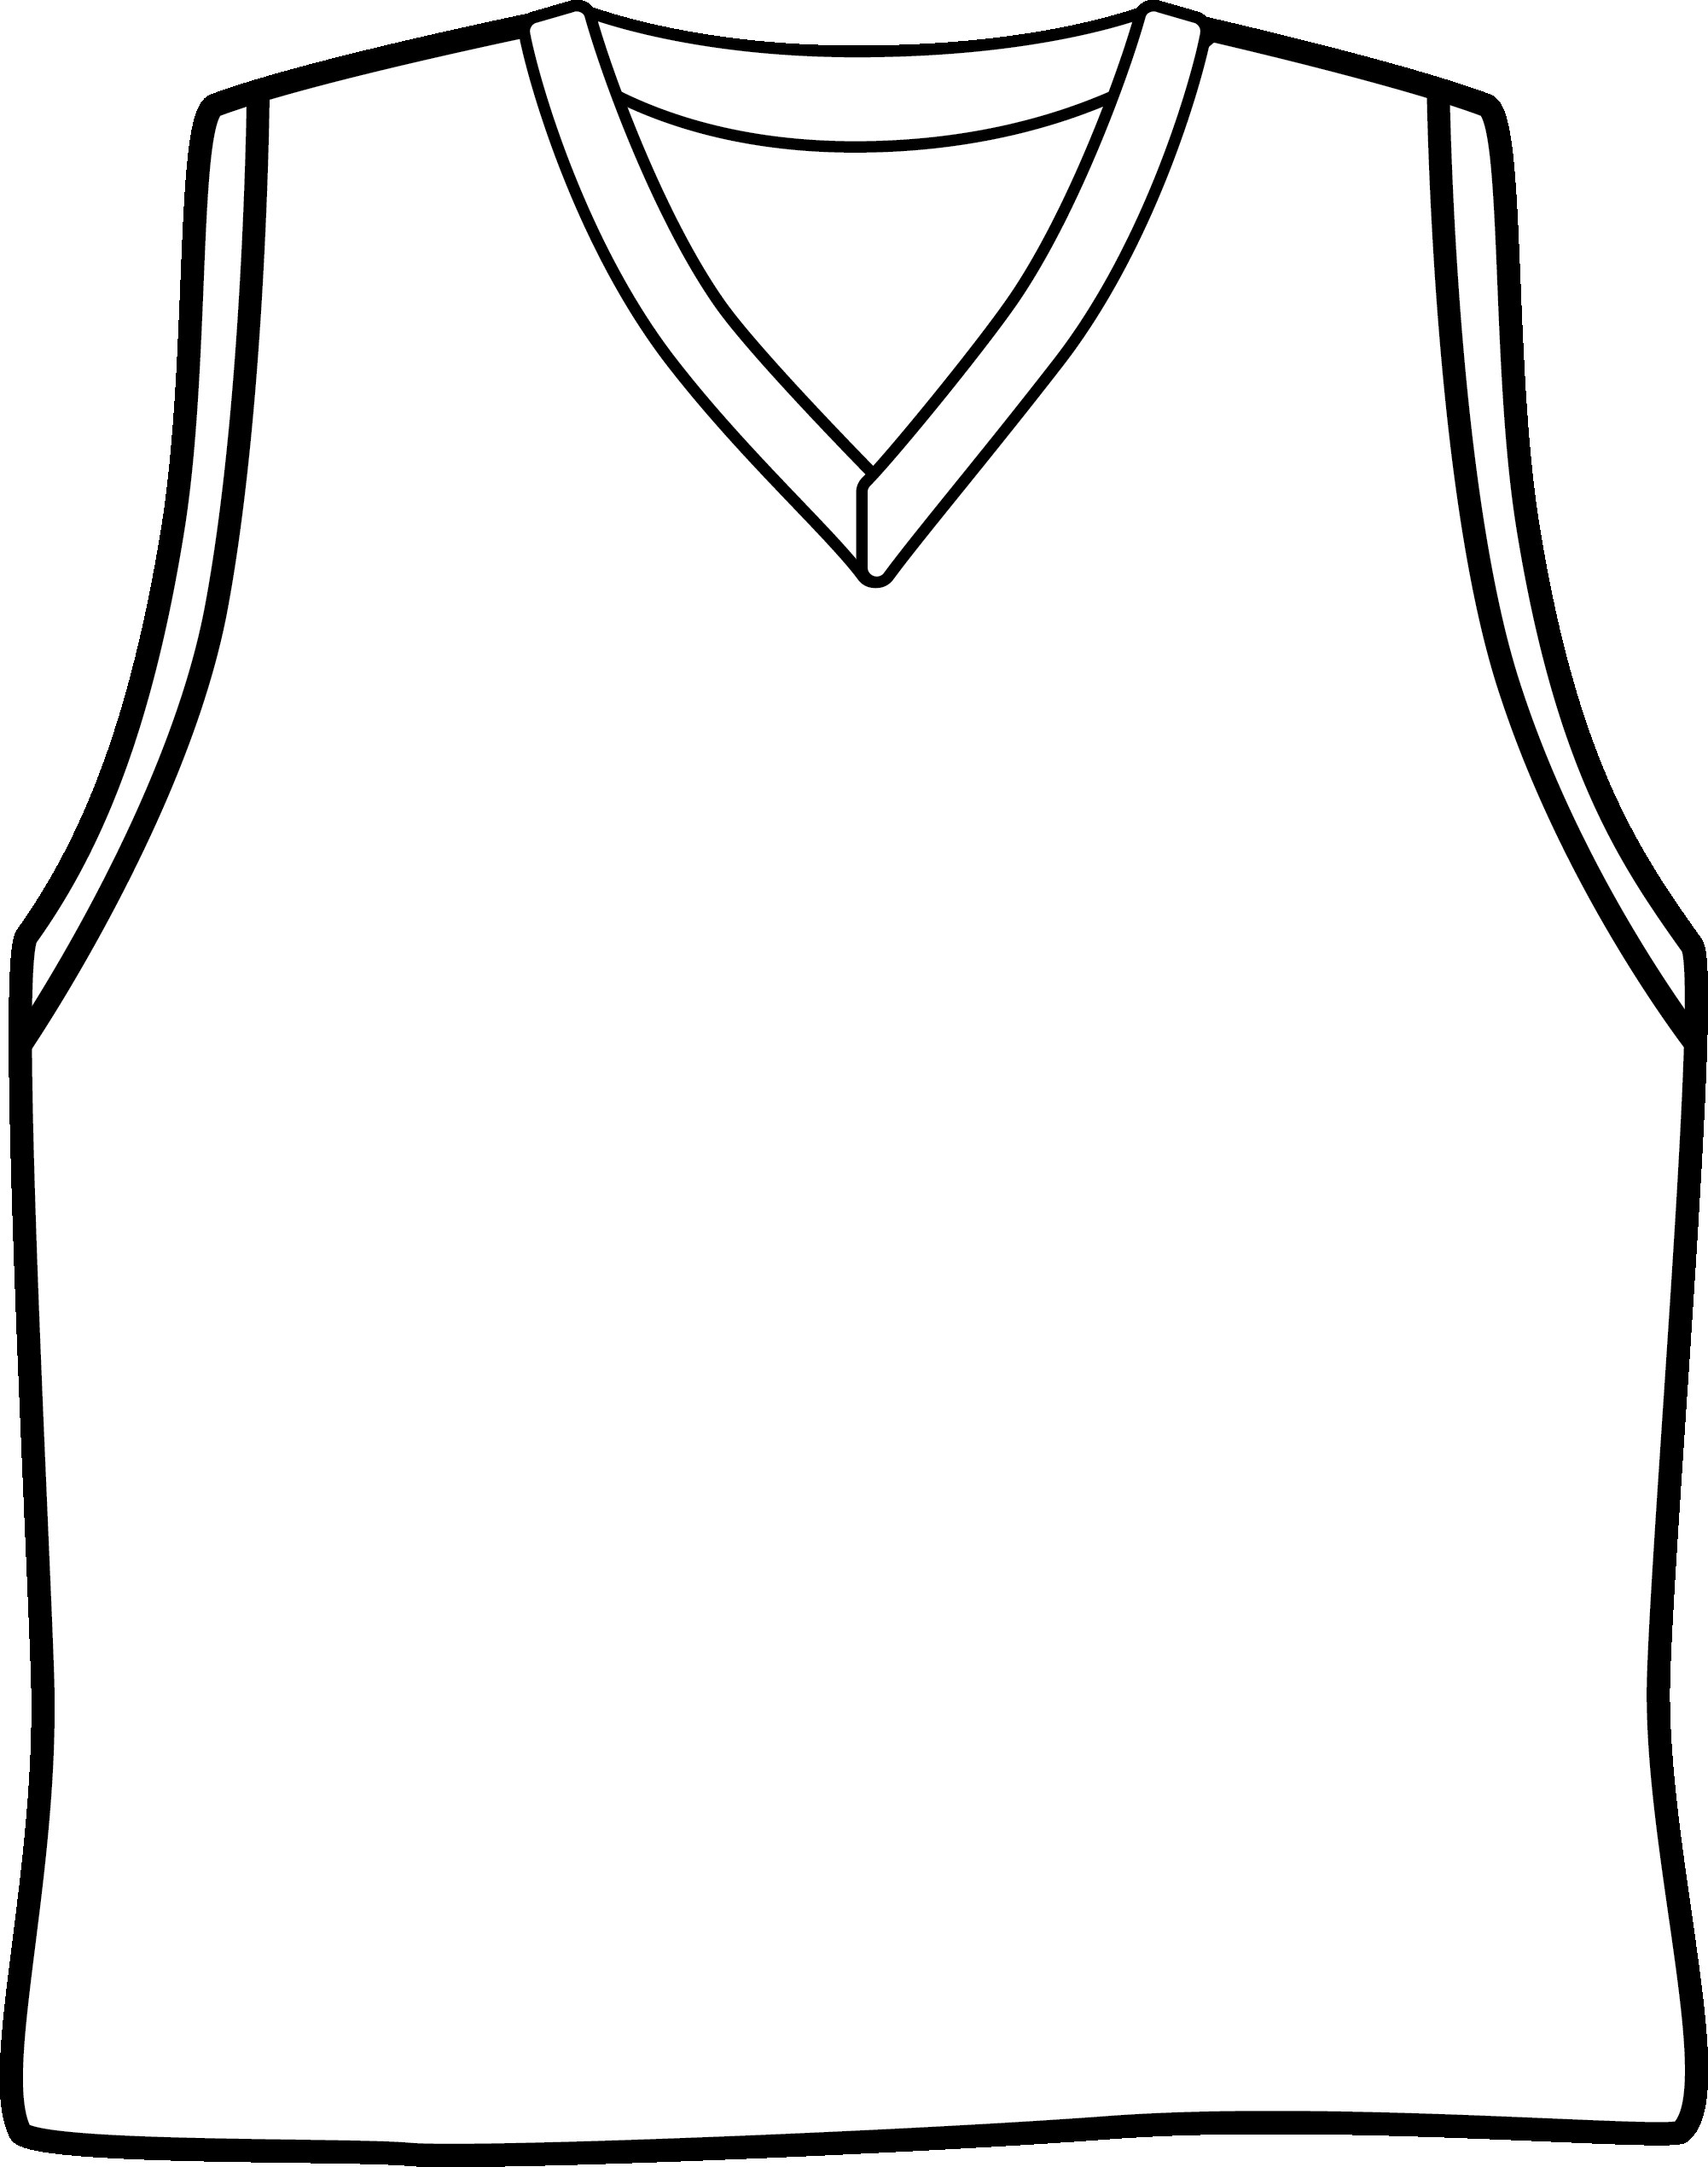 Basketball jersey drawing at getdrawings free for personal use 2002x2540 invitation maker basketball inspirationalnew white basketball stopboris Gallery